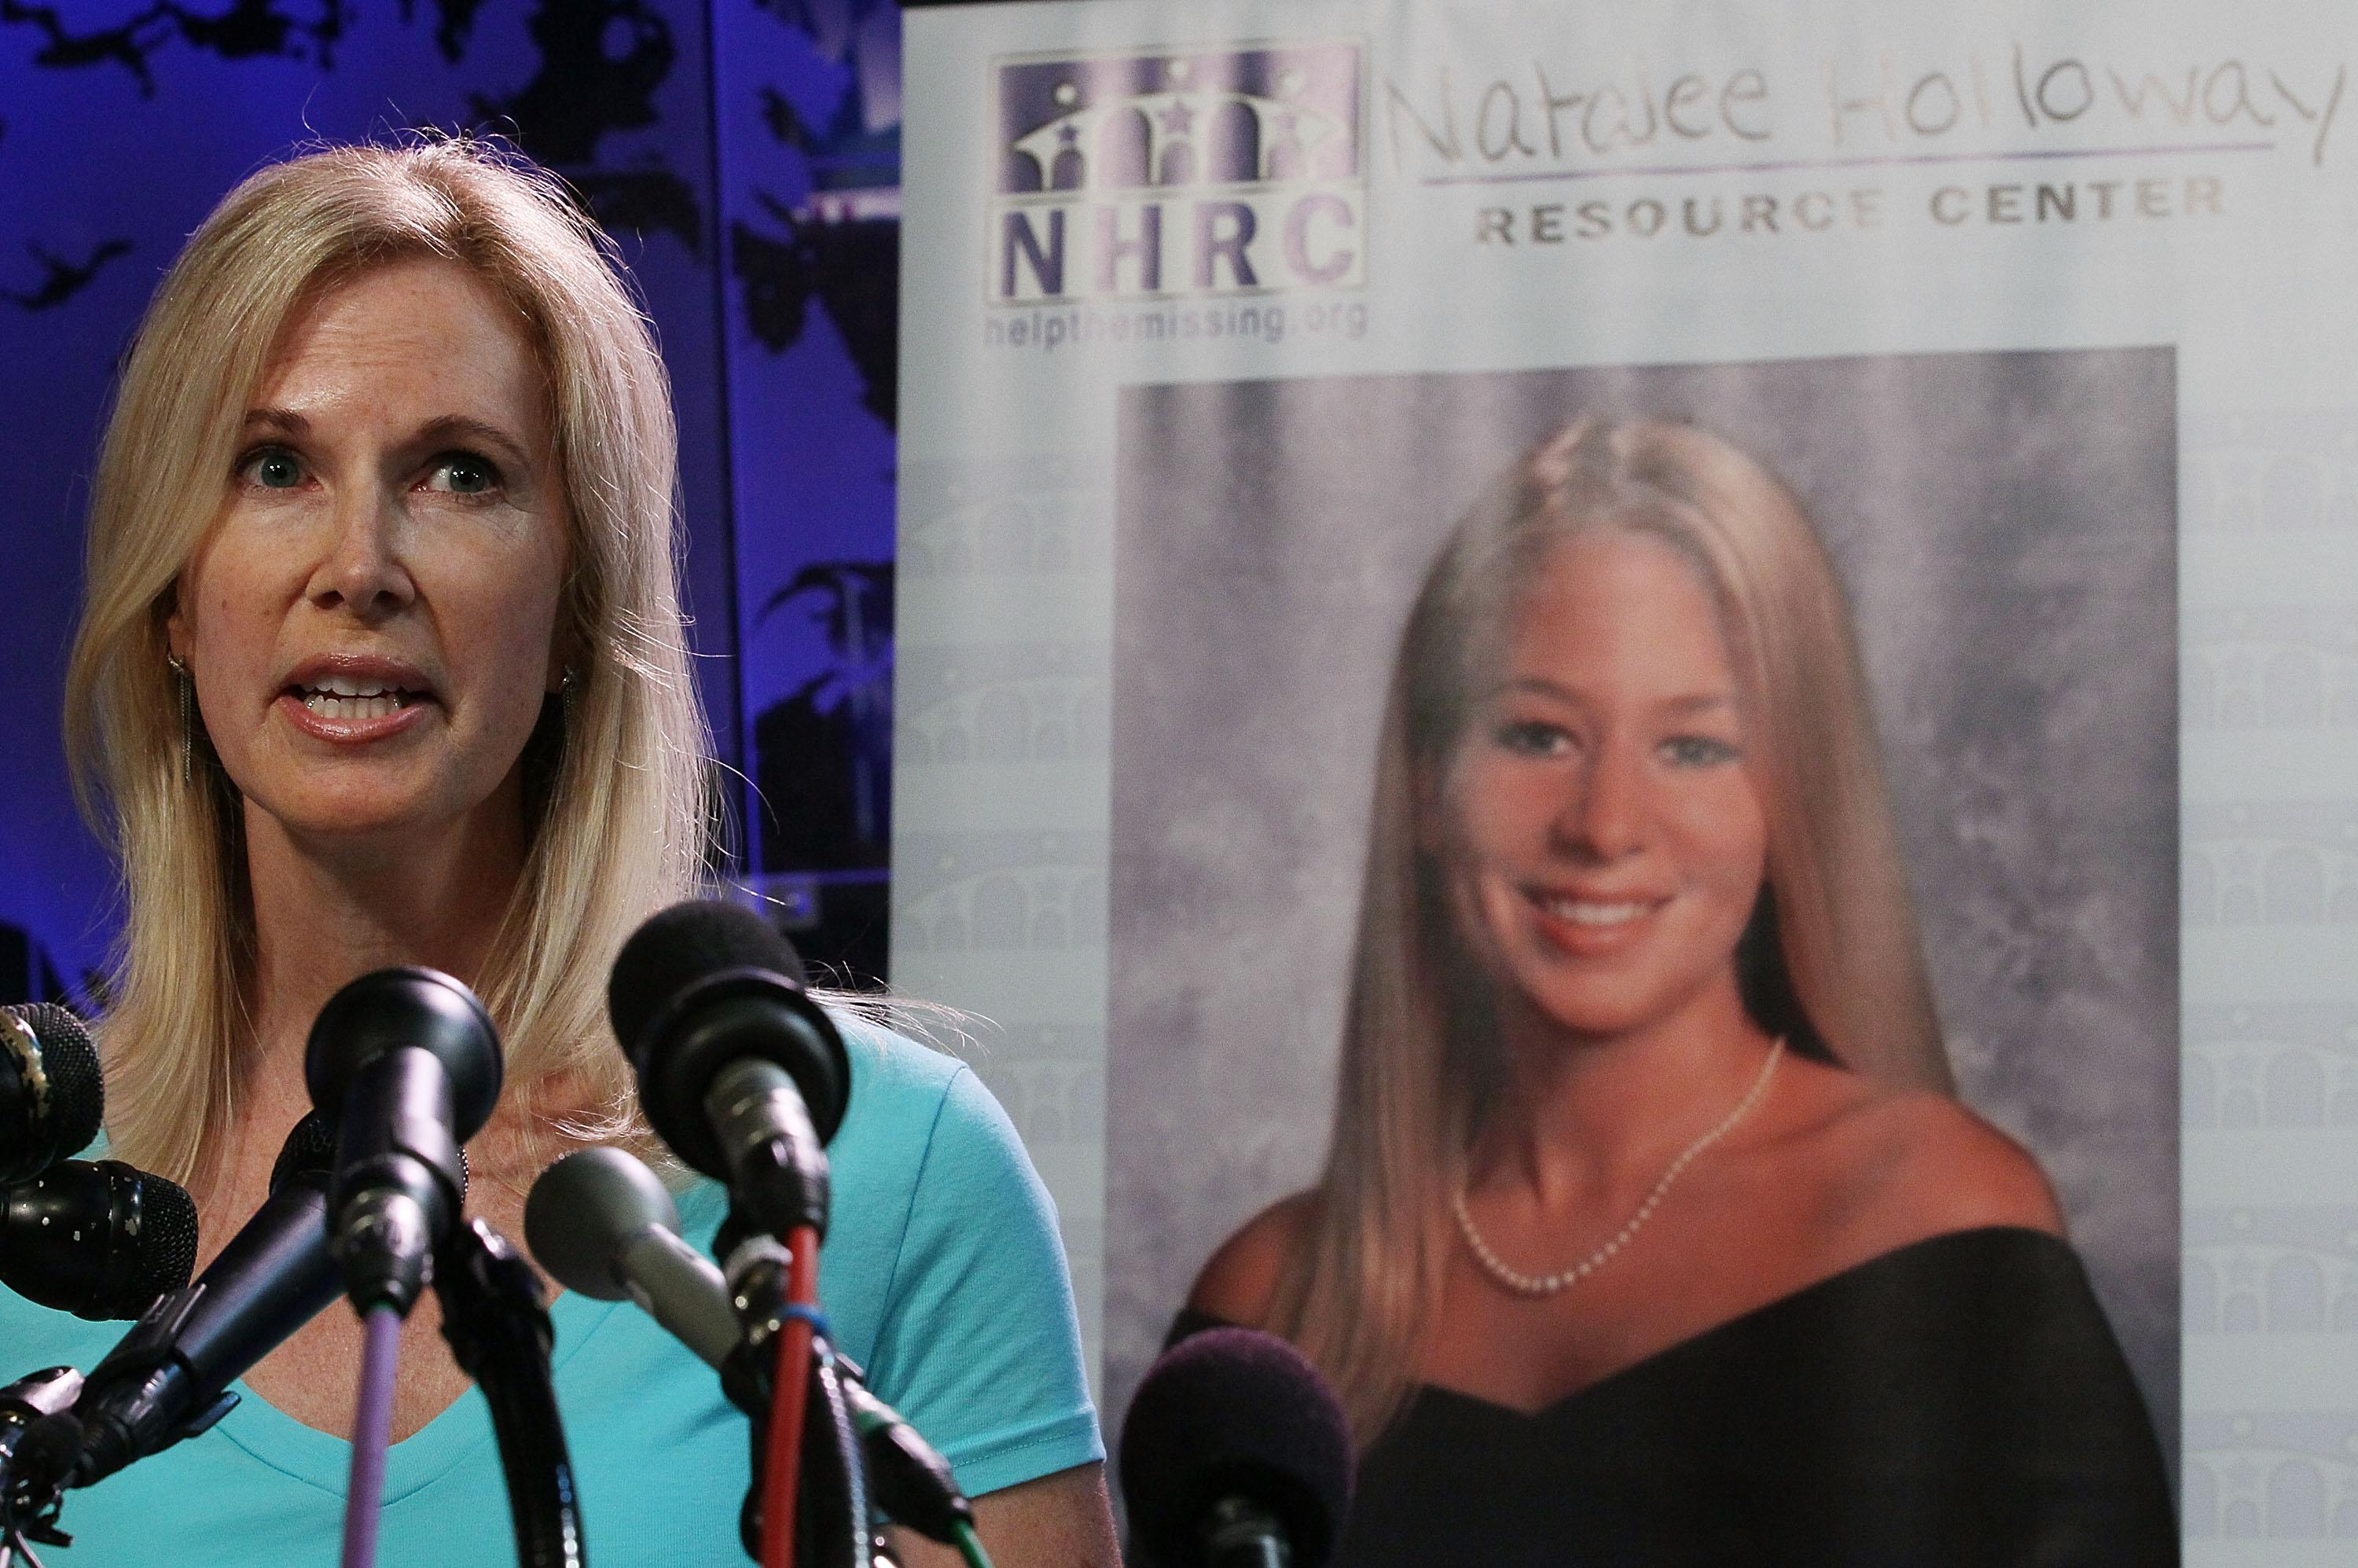 Remains found in Aruba do not belong to Natalee Holloway